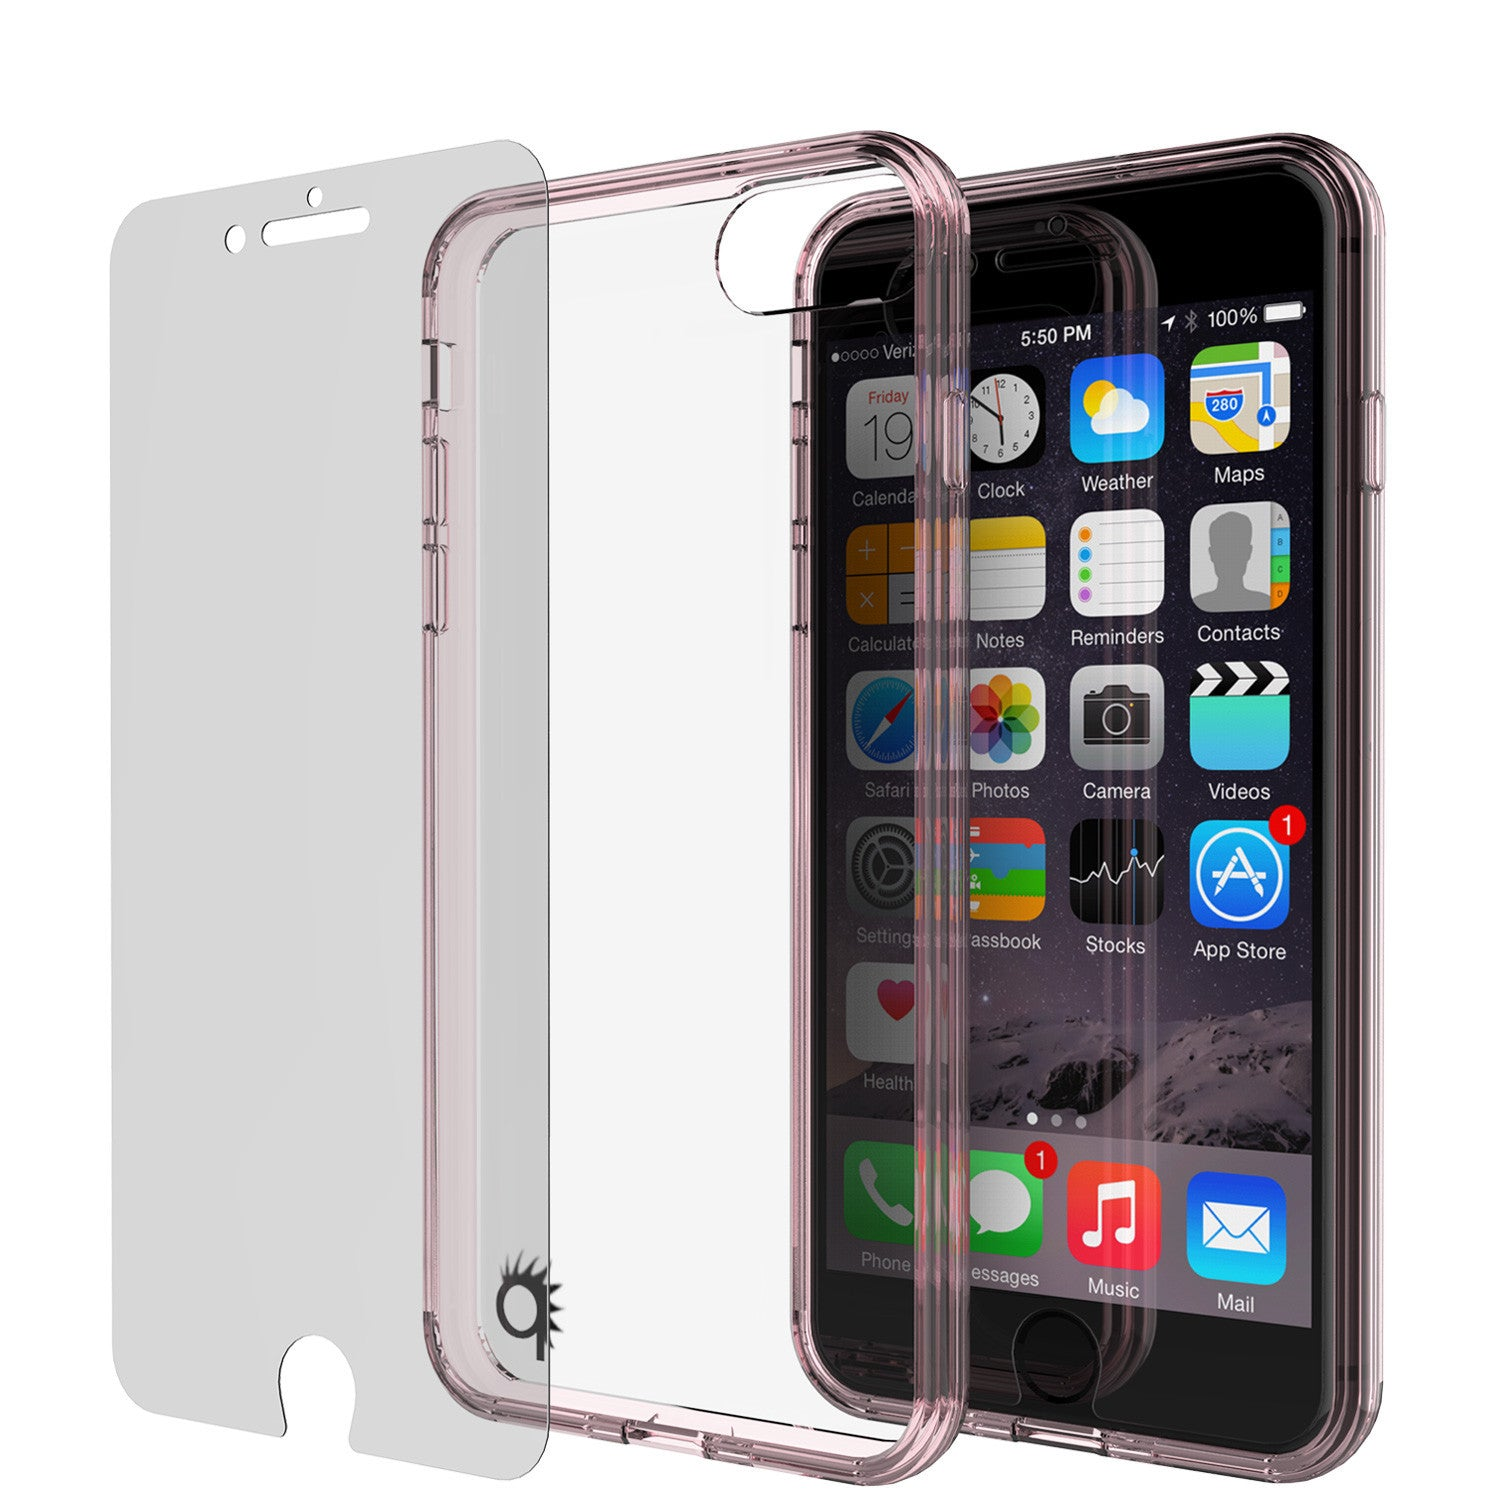 iPhone 7+ Plus Case Punkcase® LUCID 2.0 Crystal Pink Series w/ SHIELD Screen Protector | Ultra Fit